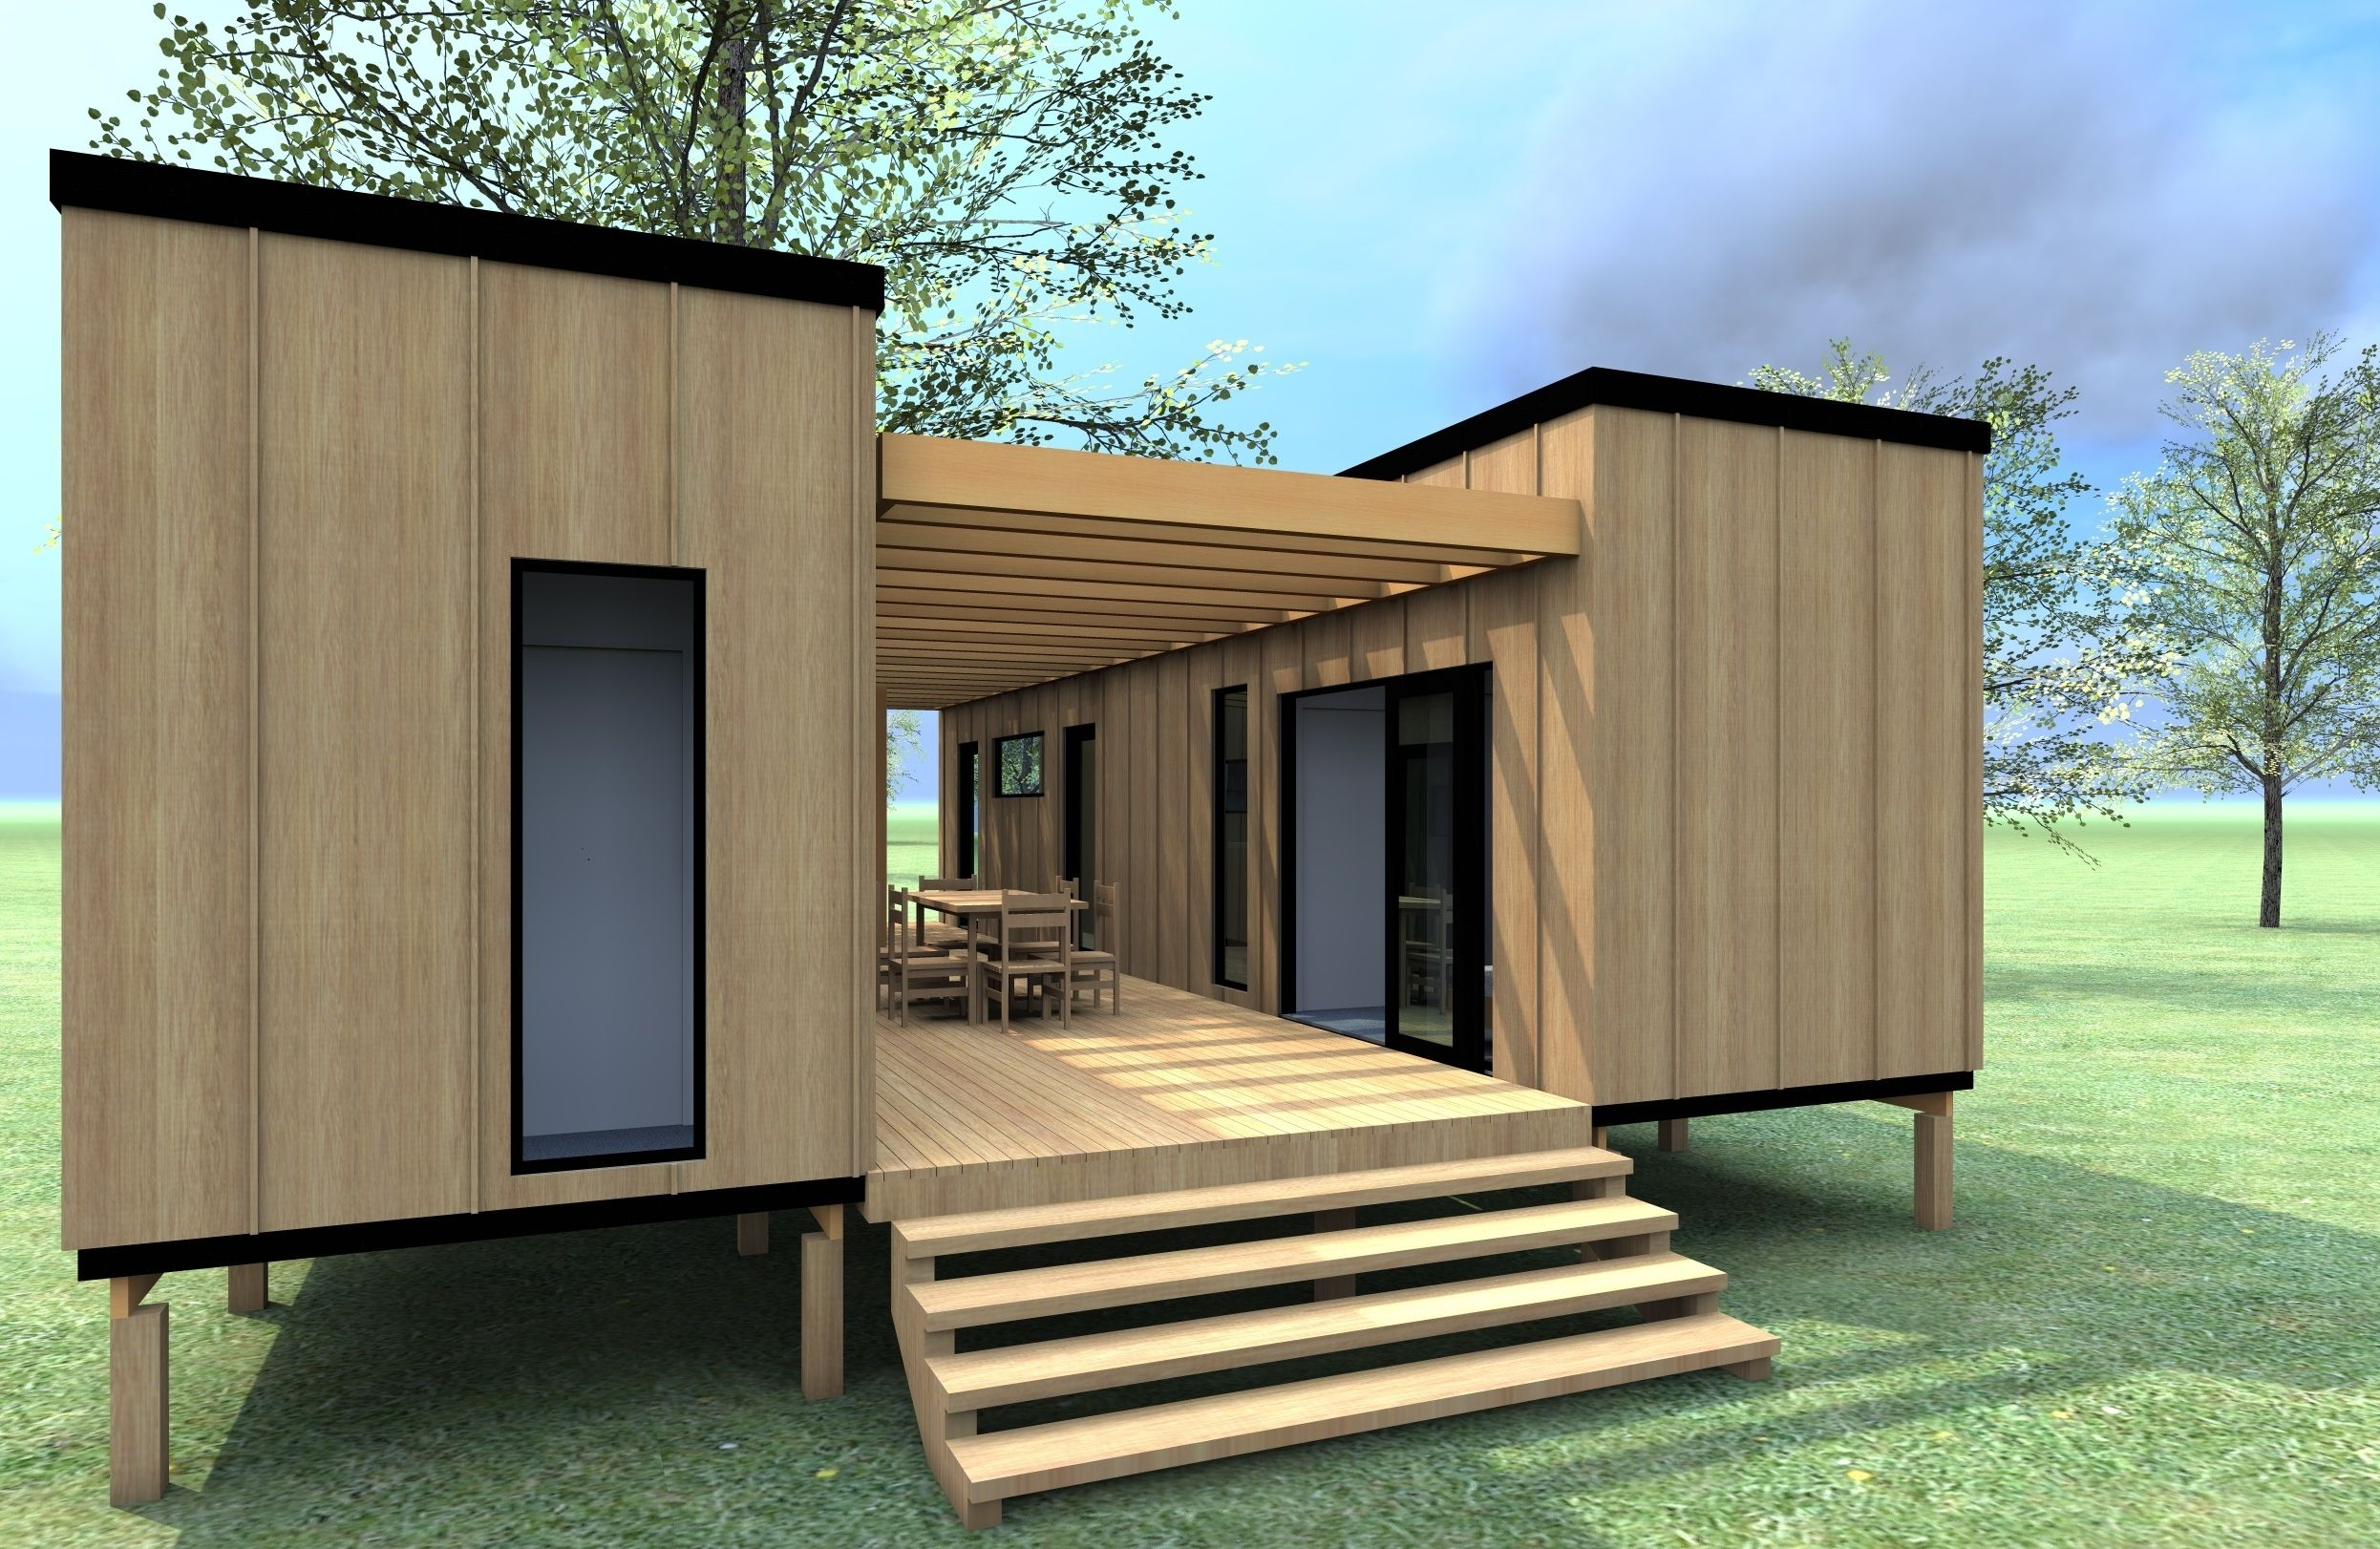 Best Trend Shipping Container Home Designs And Plan 5196 Shipping     Best Trend Shipping Container Home Designs And Plan 5196 Shipping Container  Home Designs And Plans  Backgrounds